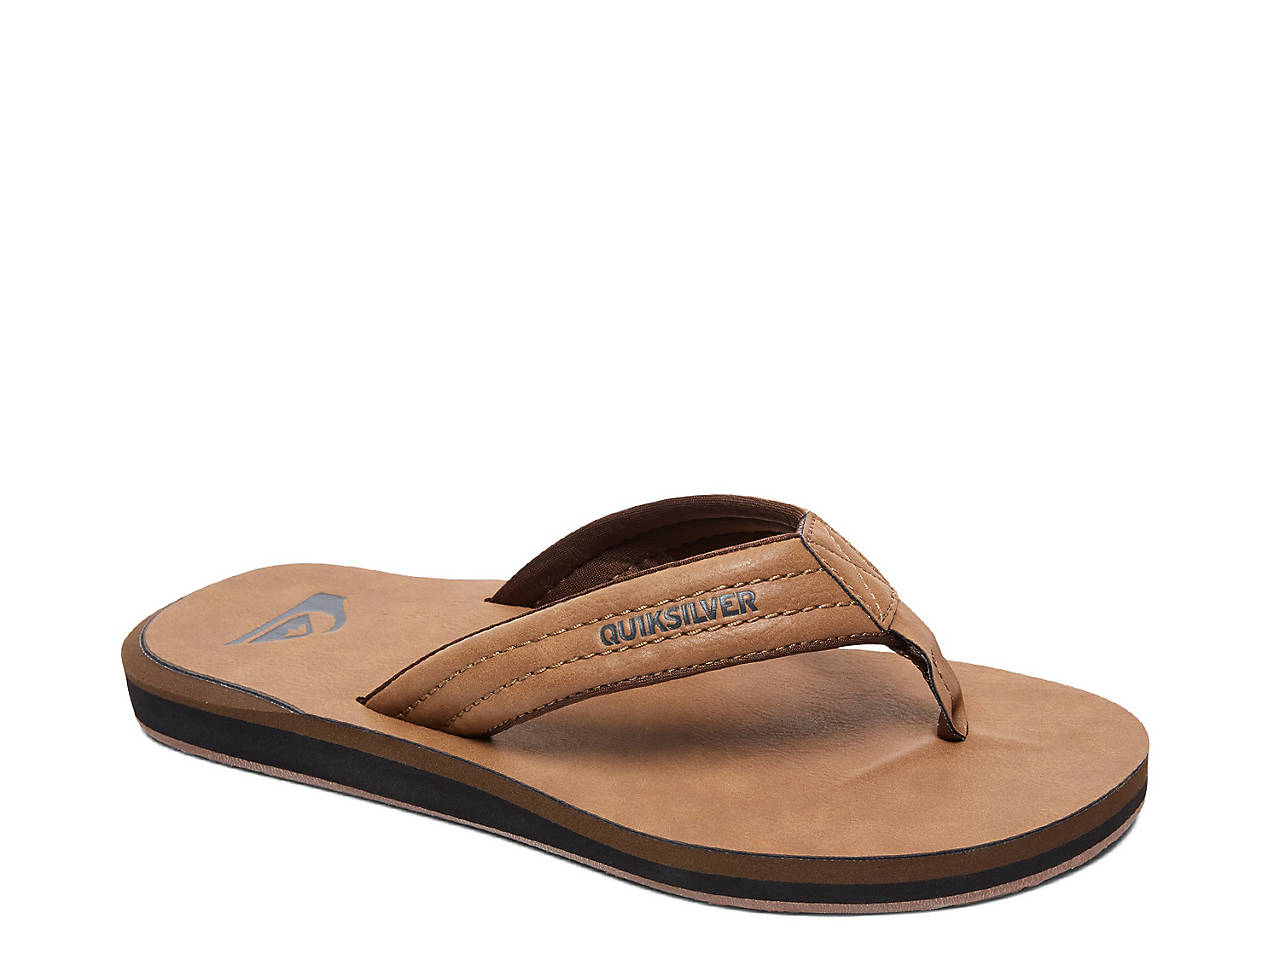 c517adf2ffab Quiksilver Carver Flip Flop Men s Shoes